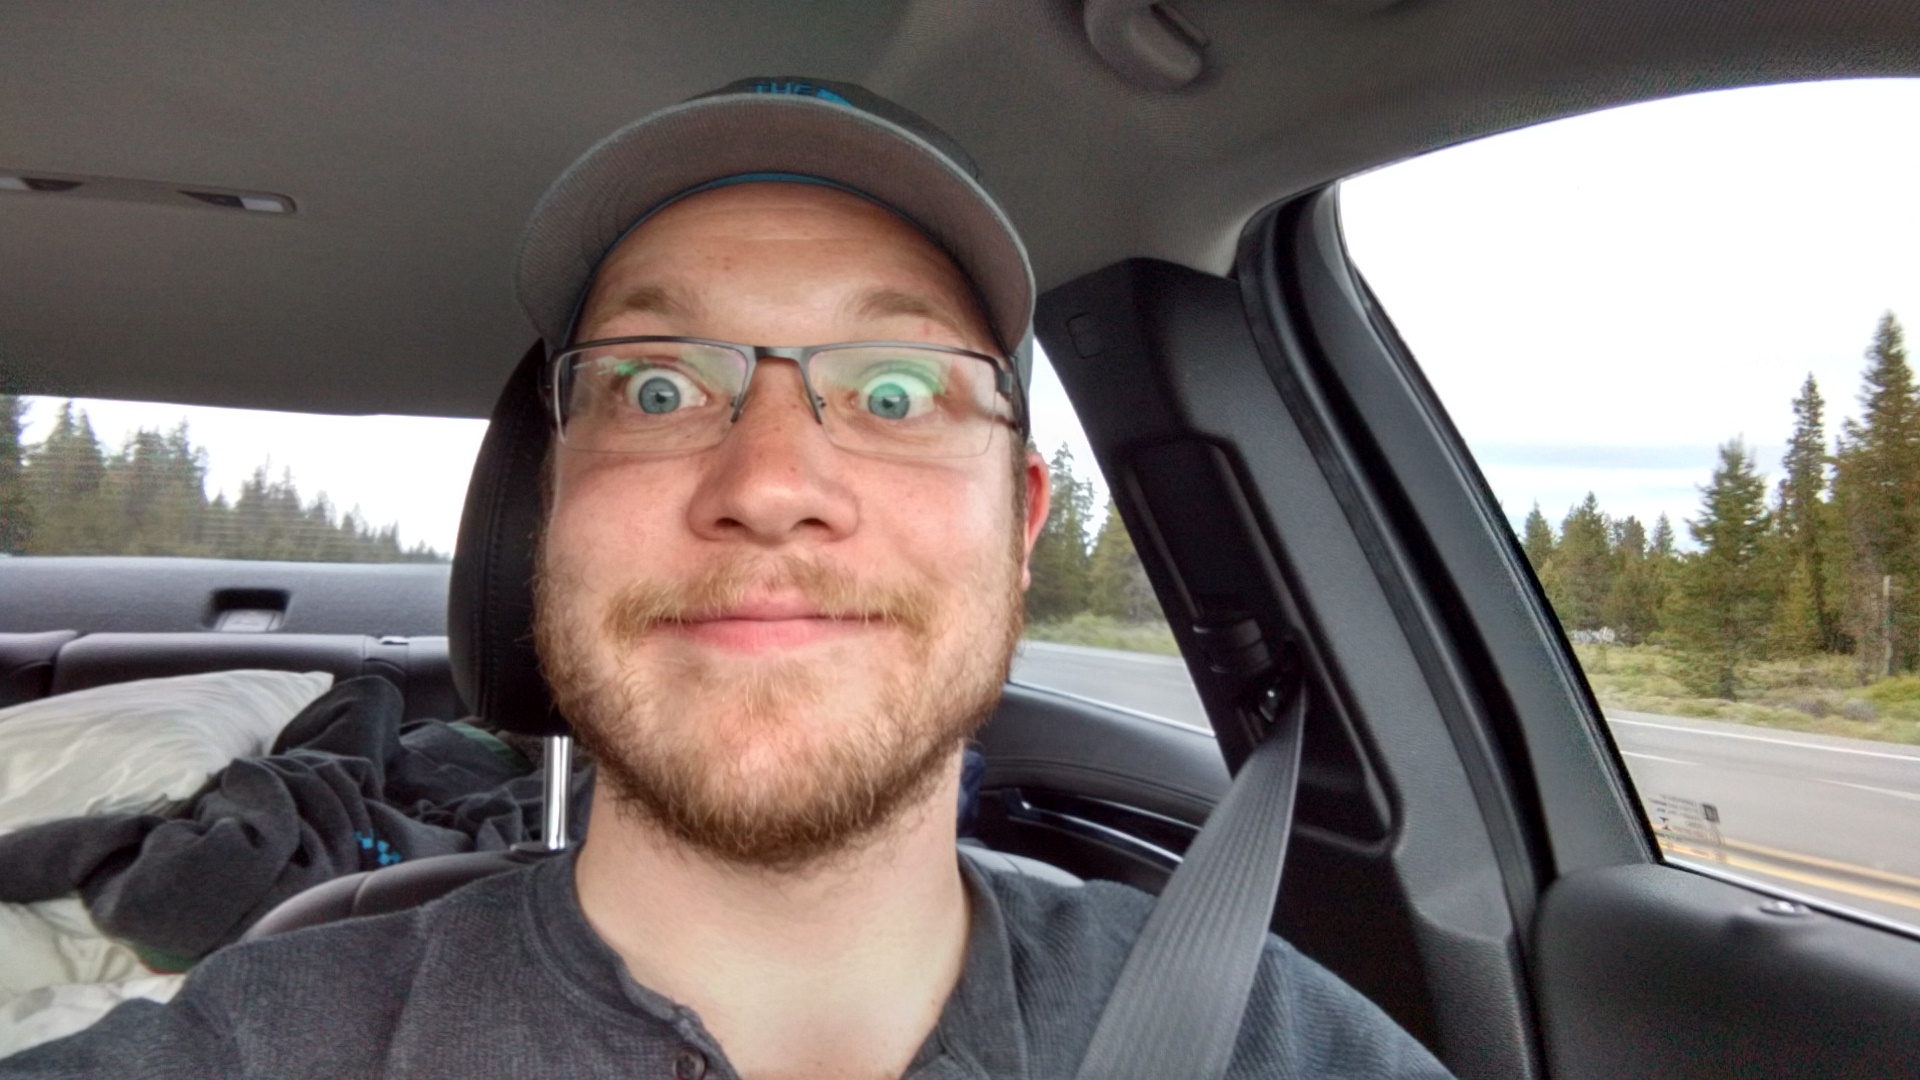 Finally back in my car, with my crazy wide eyes on my way to California.